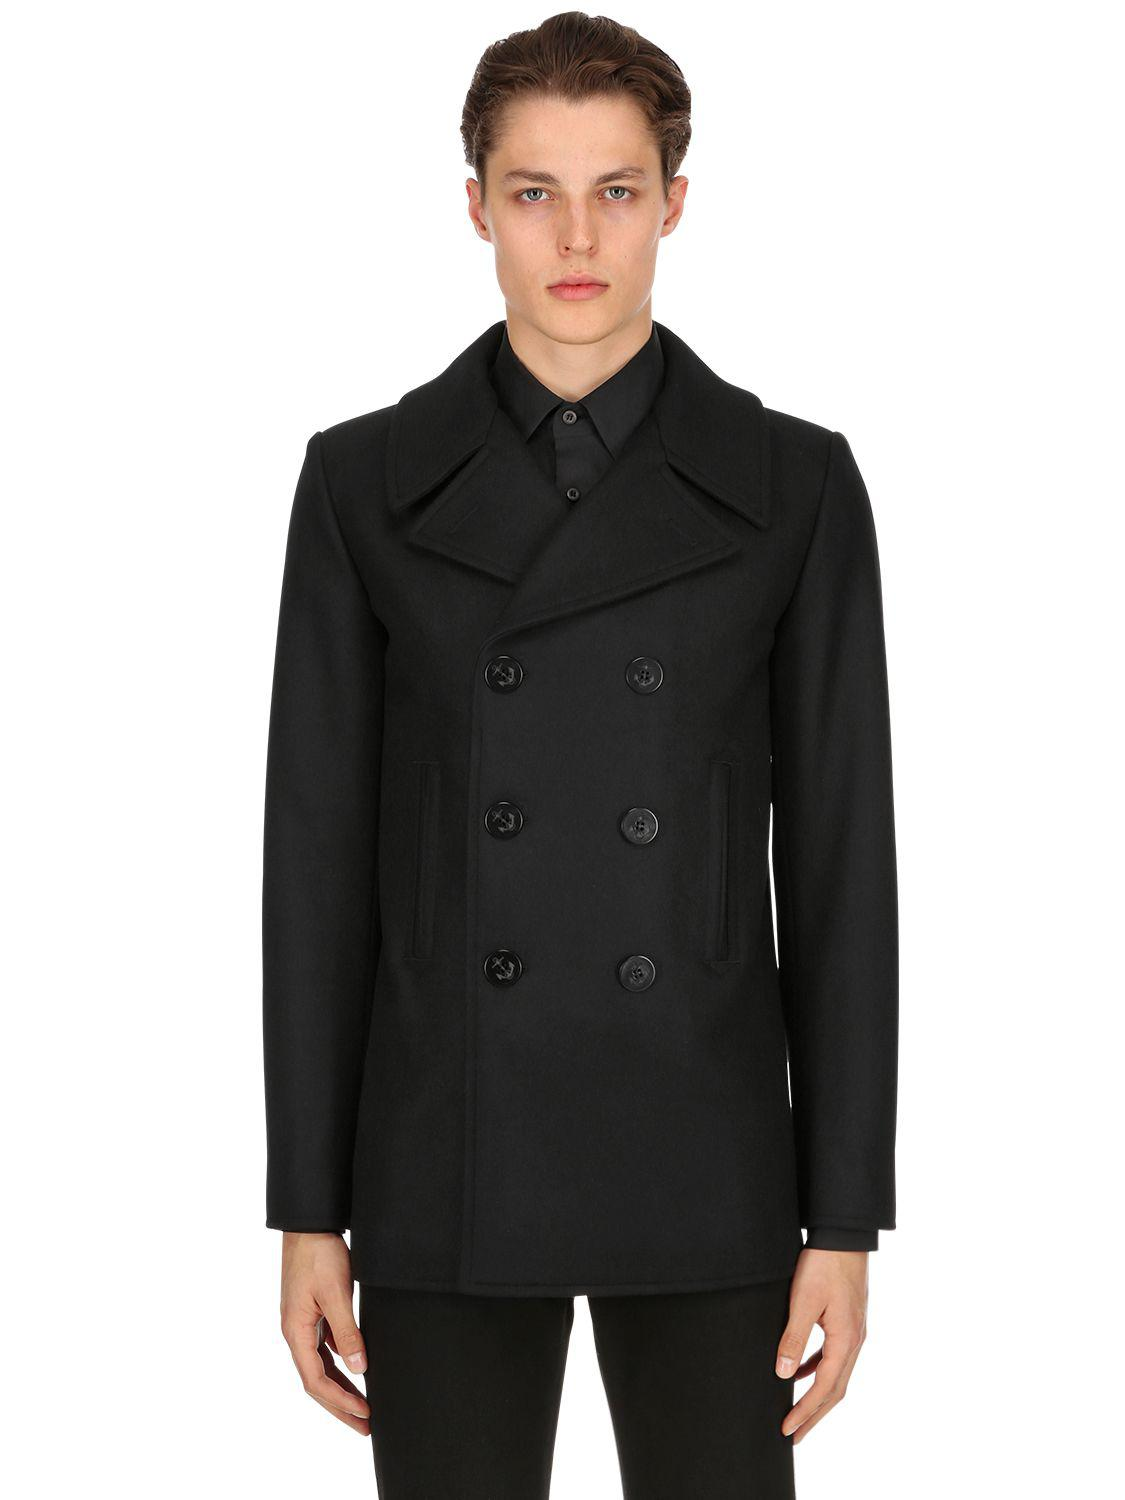 3f9cc88b878b5 Saint Laurent Double Breasted Wool Cloth Peacoat in Black for Men - Lyst